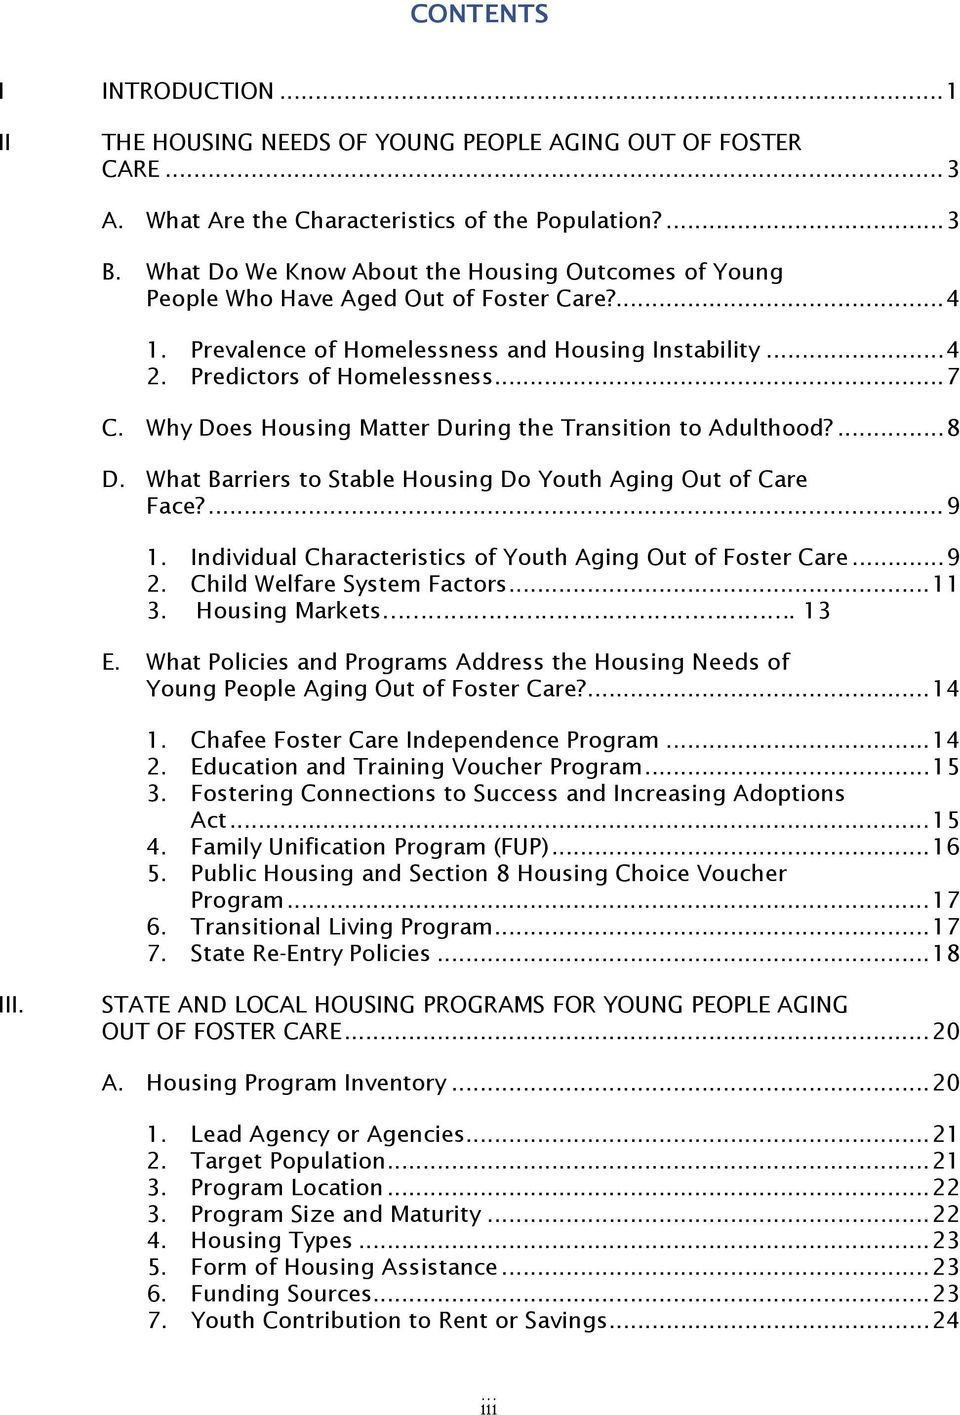 Why Does Housing Matter During the Transition to Adulthood?...8 D. What Barriers to Stable Housing Do Youth Aging Out of Care Face?...9 1. Individual Characteristics of Youth Aging Out of Foster Care.